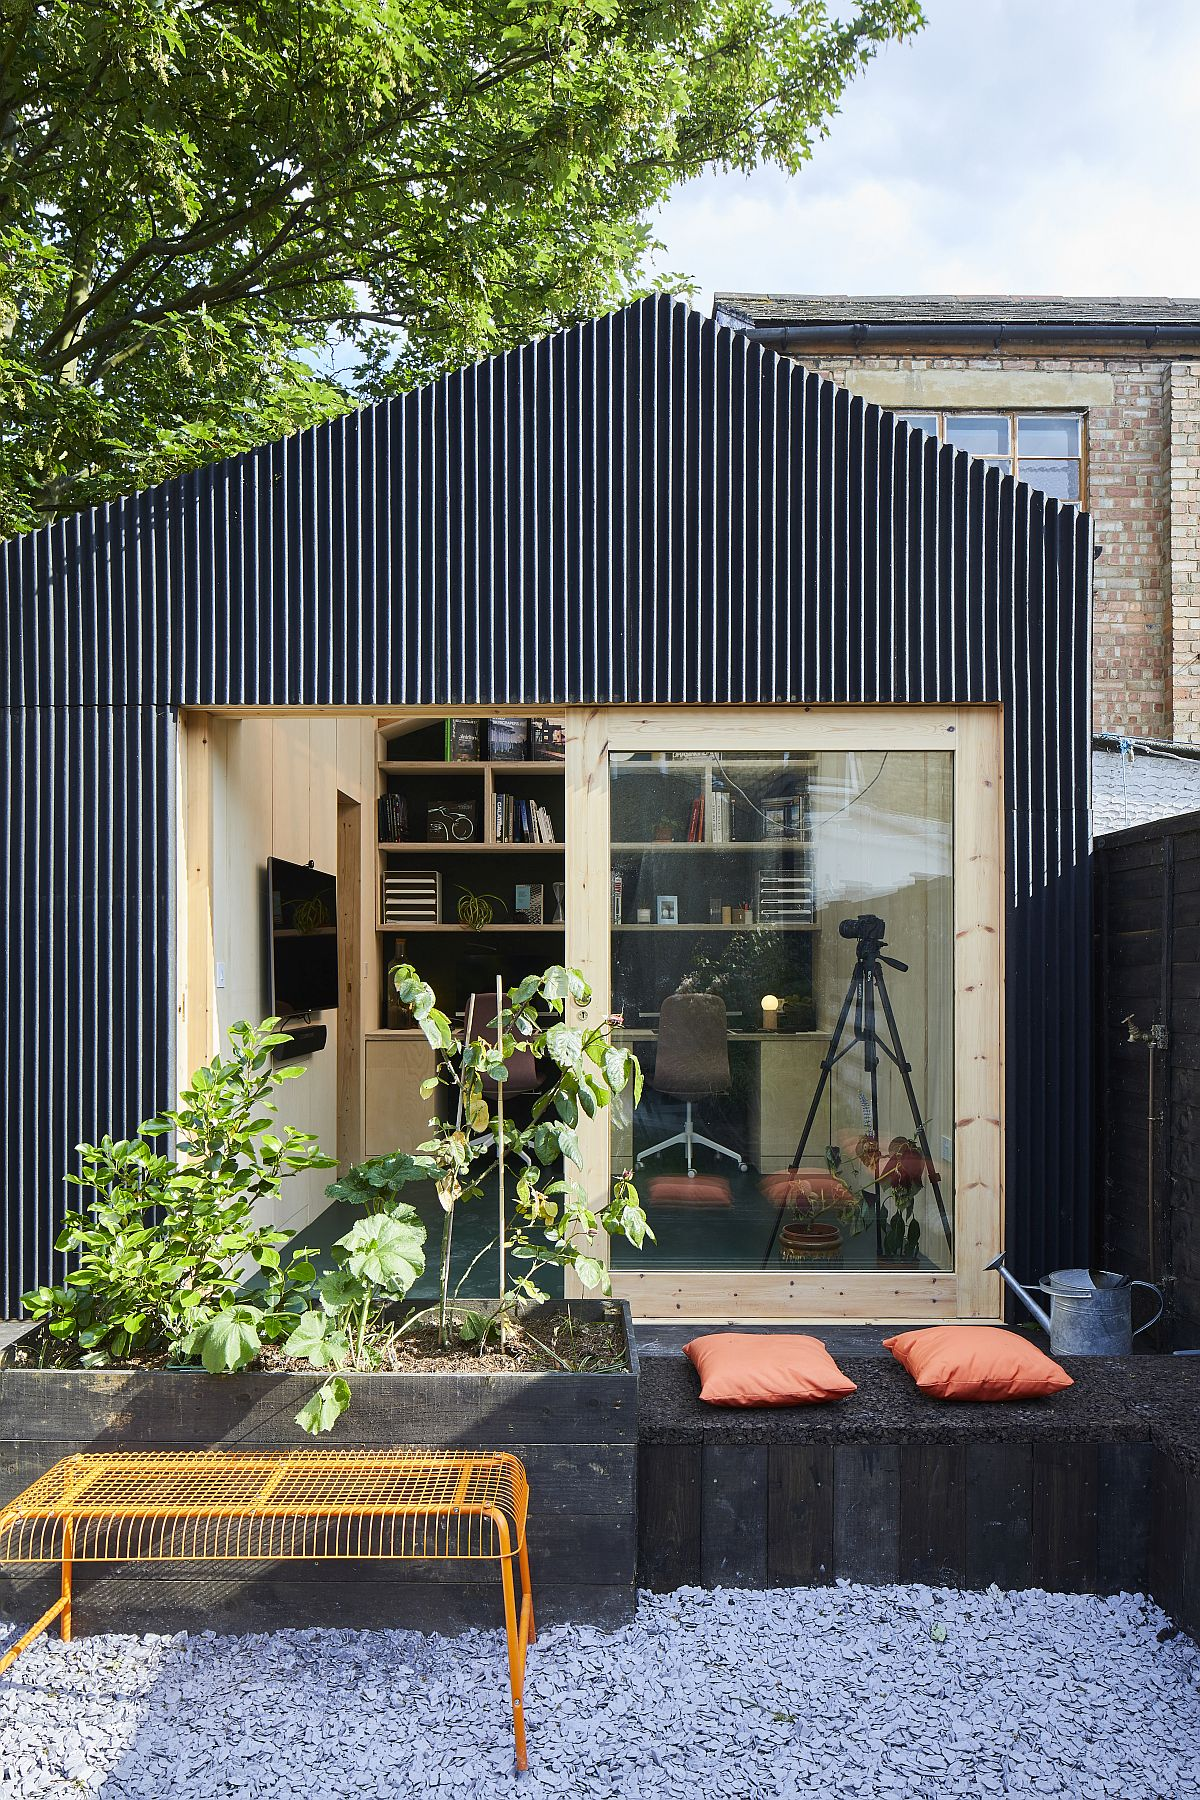 Garden-shed-and-office-design-integrates-it-easily-with-the-main-house-26839